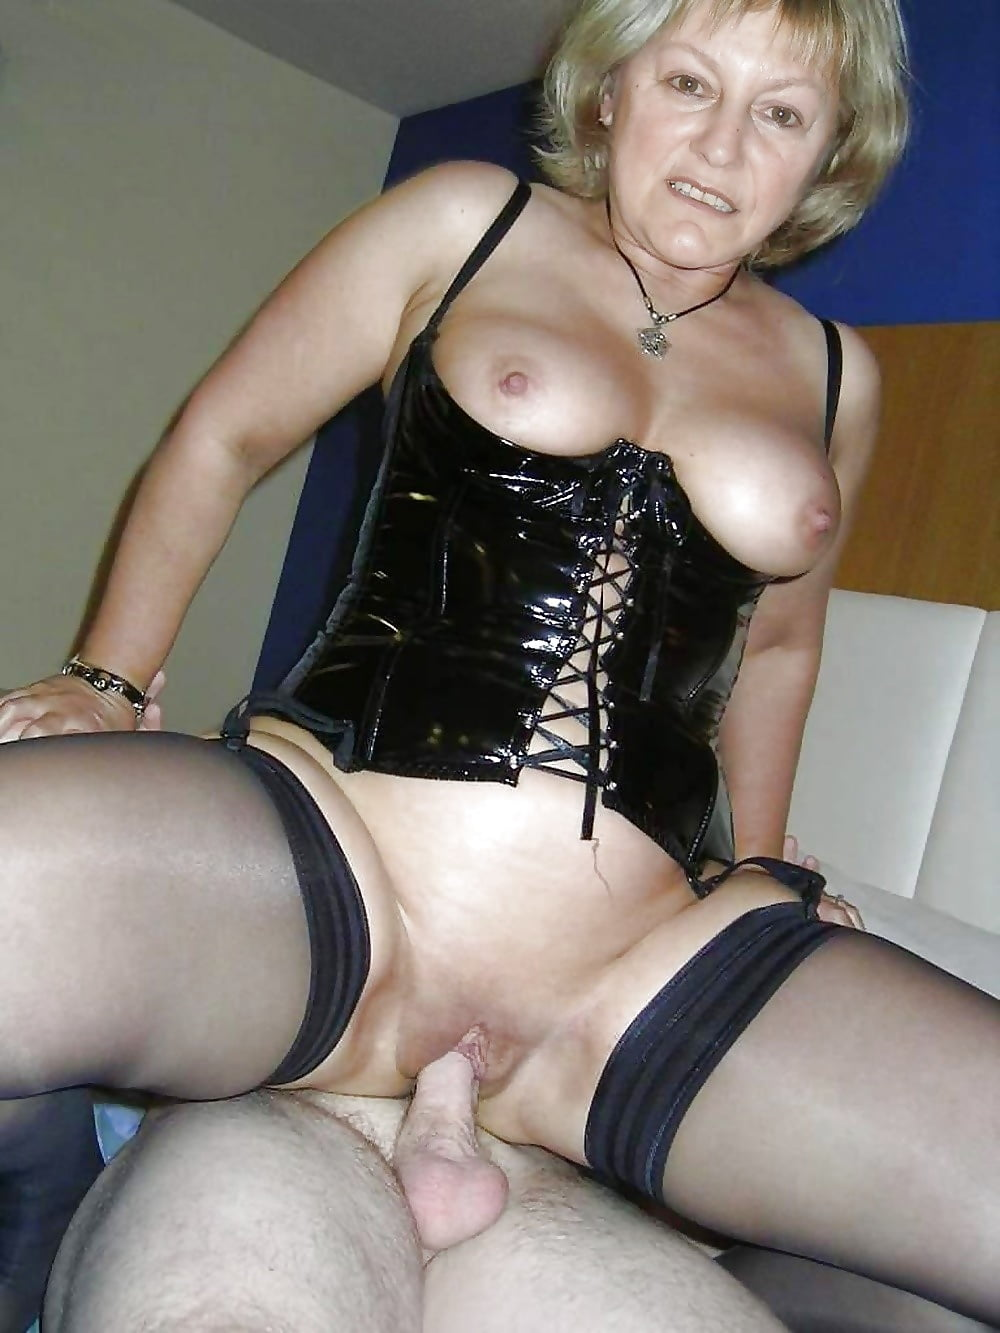 Super hot milf first time noise complaints make dirty tart cops like me